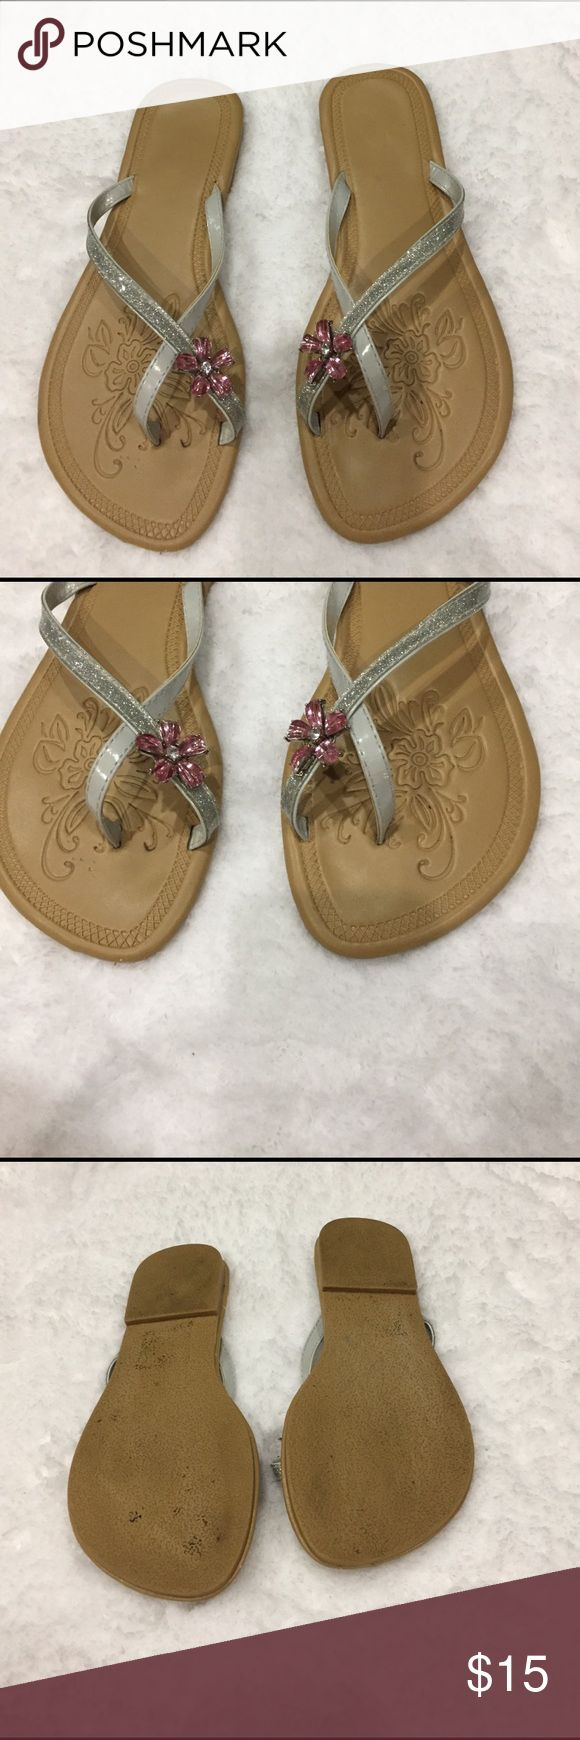 💜Boutique super cute brand sparkly flip flops 💜💜Boutique brand sparkly flip flops with crystal pink rose at toe. These are super cute!! Preloved in good condition. Some wear in last pic. Lightweight comfy shoe for all day summer wear. boutique Shoes Flats & Loafers